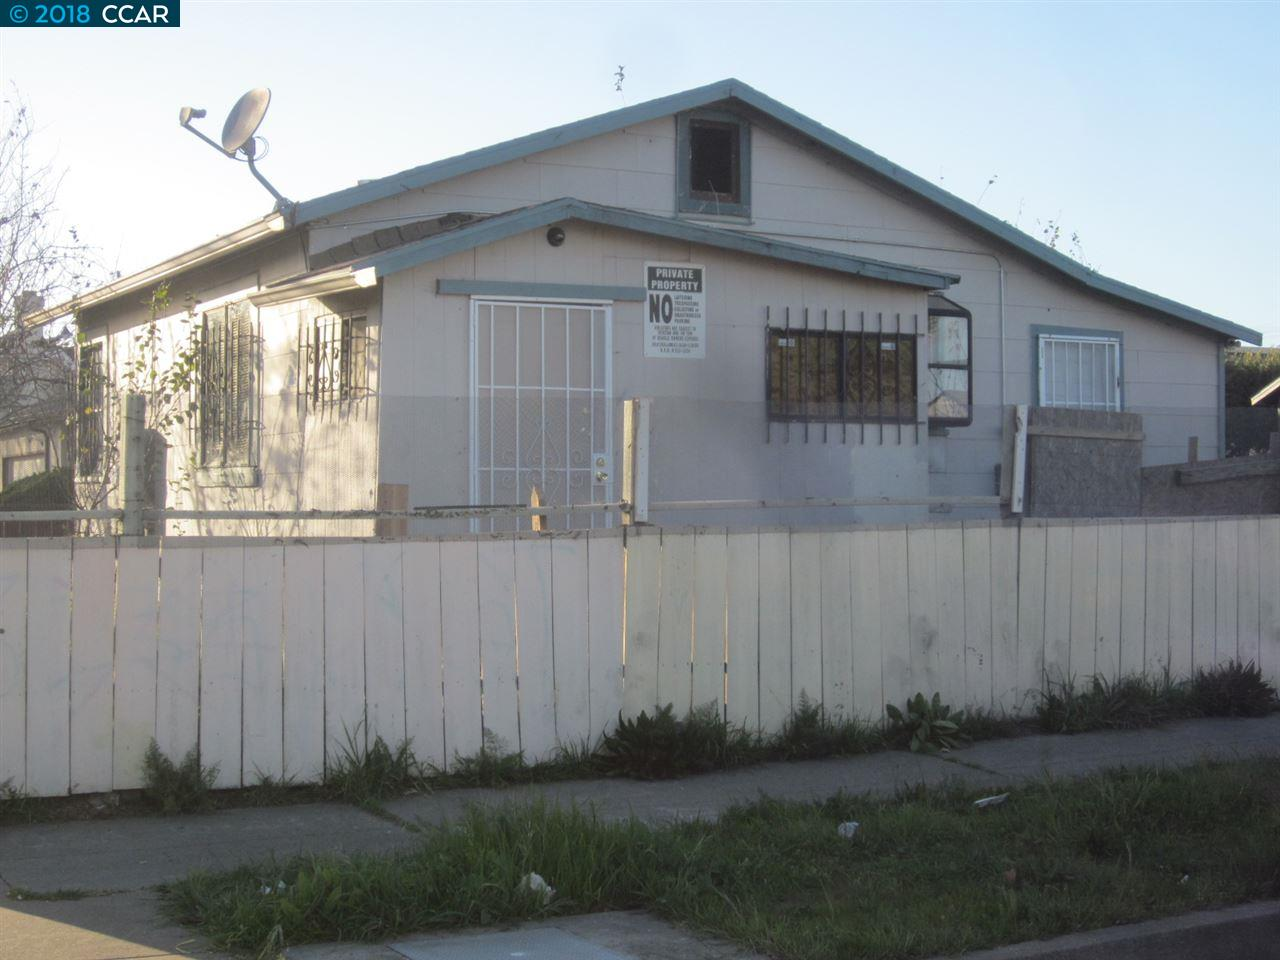 2729 CUTTING BLVD, RICHMOND, CA 94804